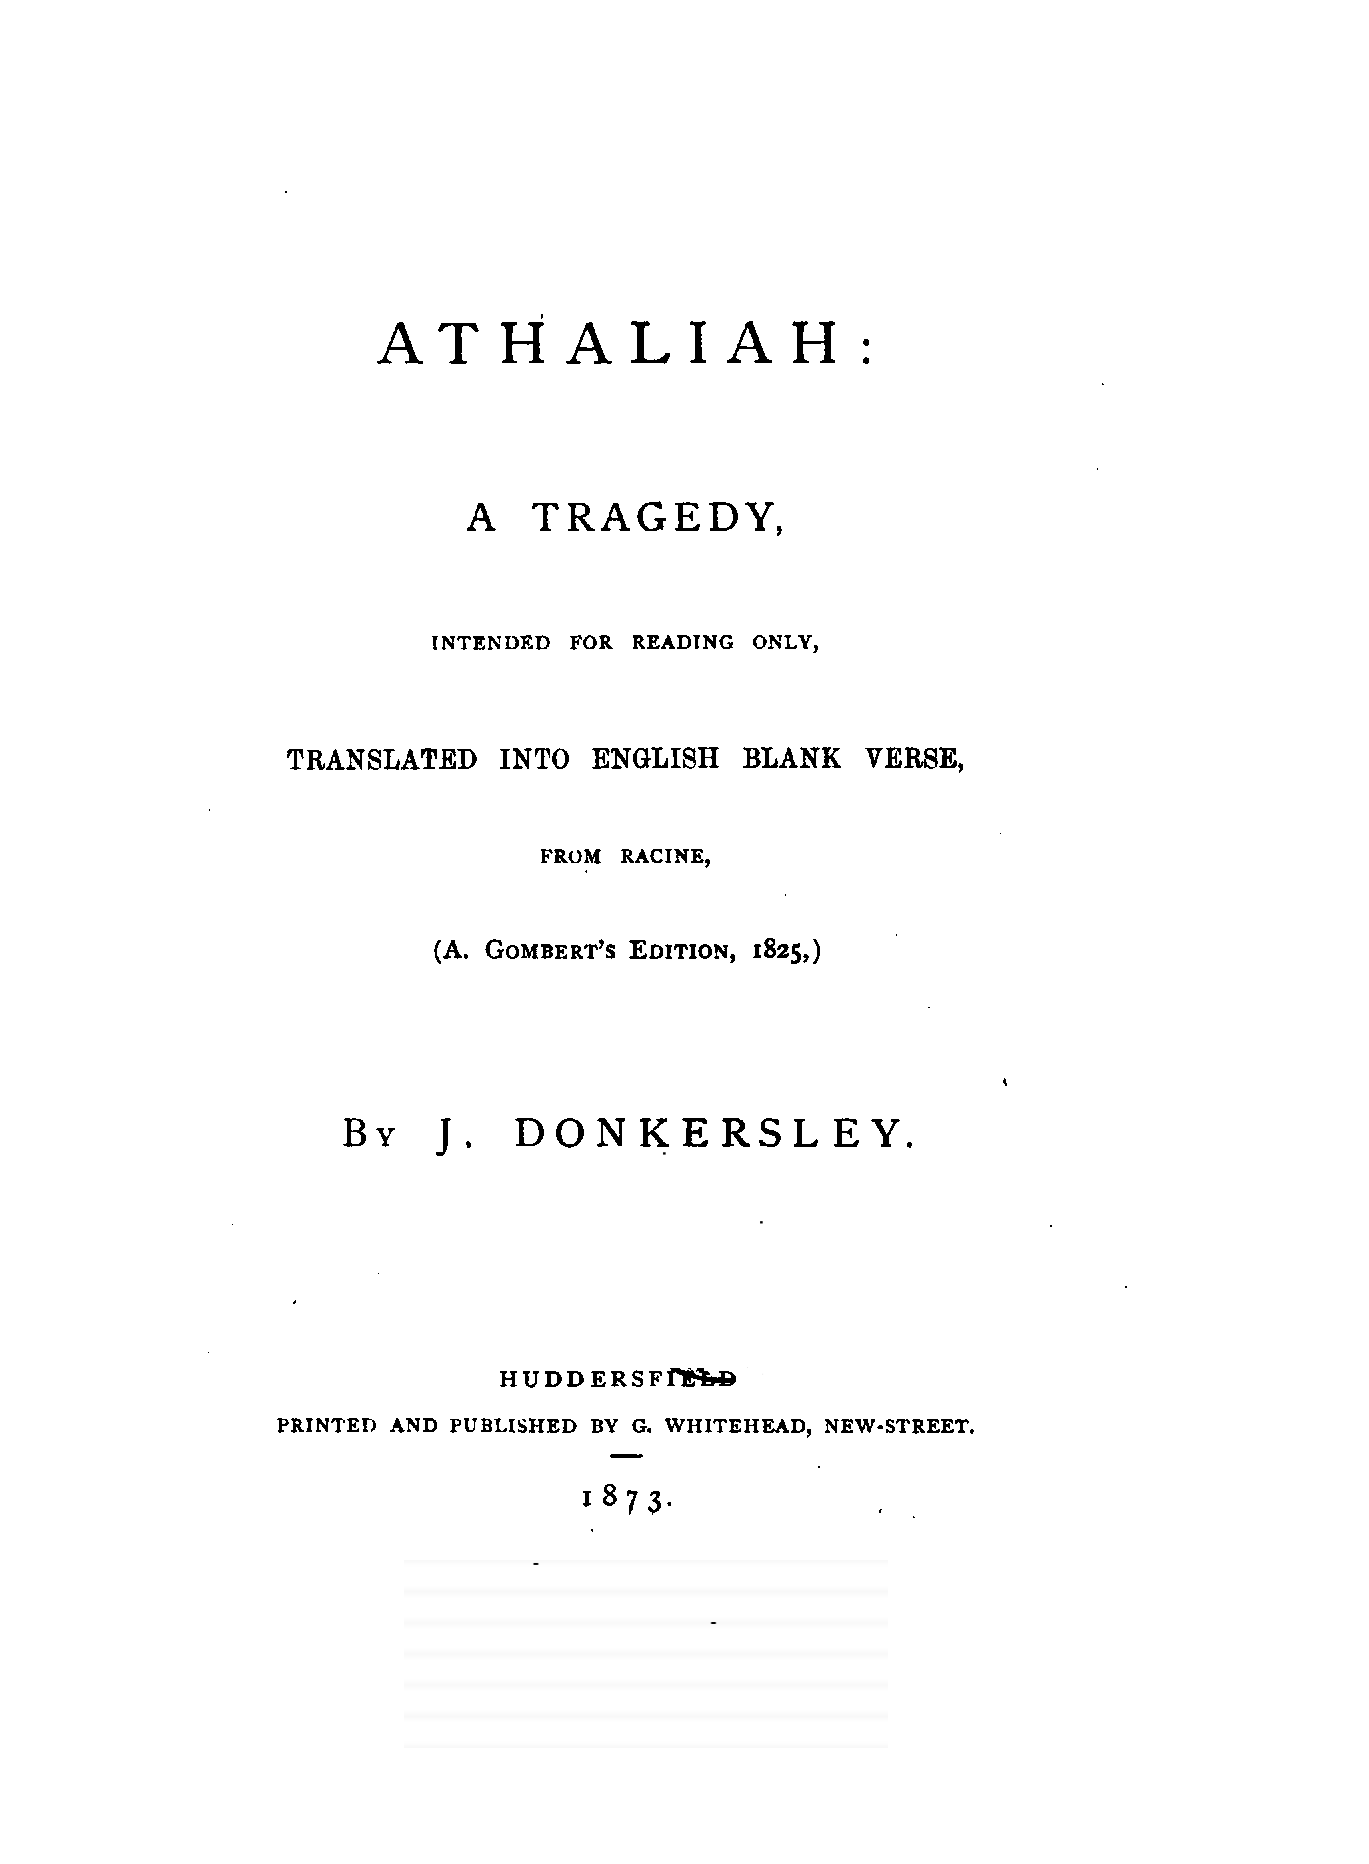 Athaliah of racine by j donkersley athaliah fandeluxe Images